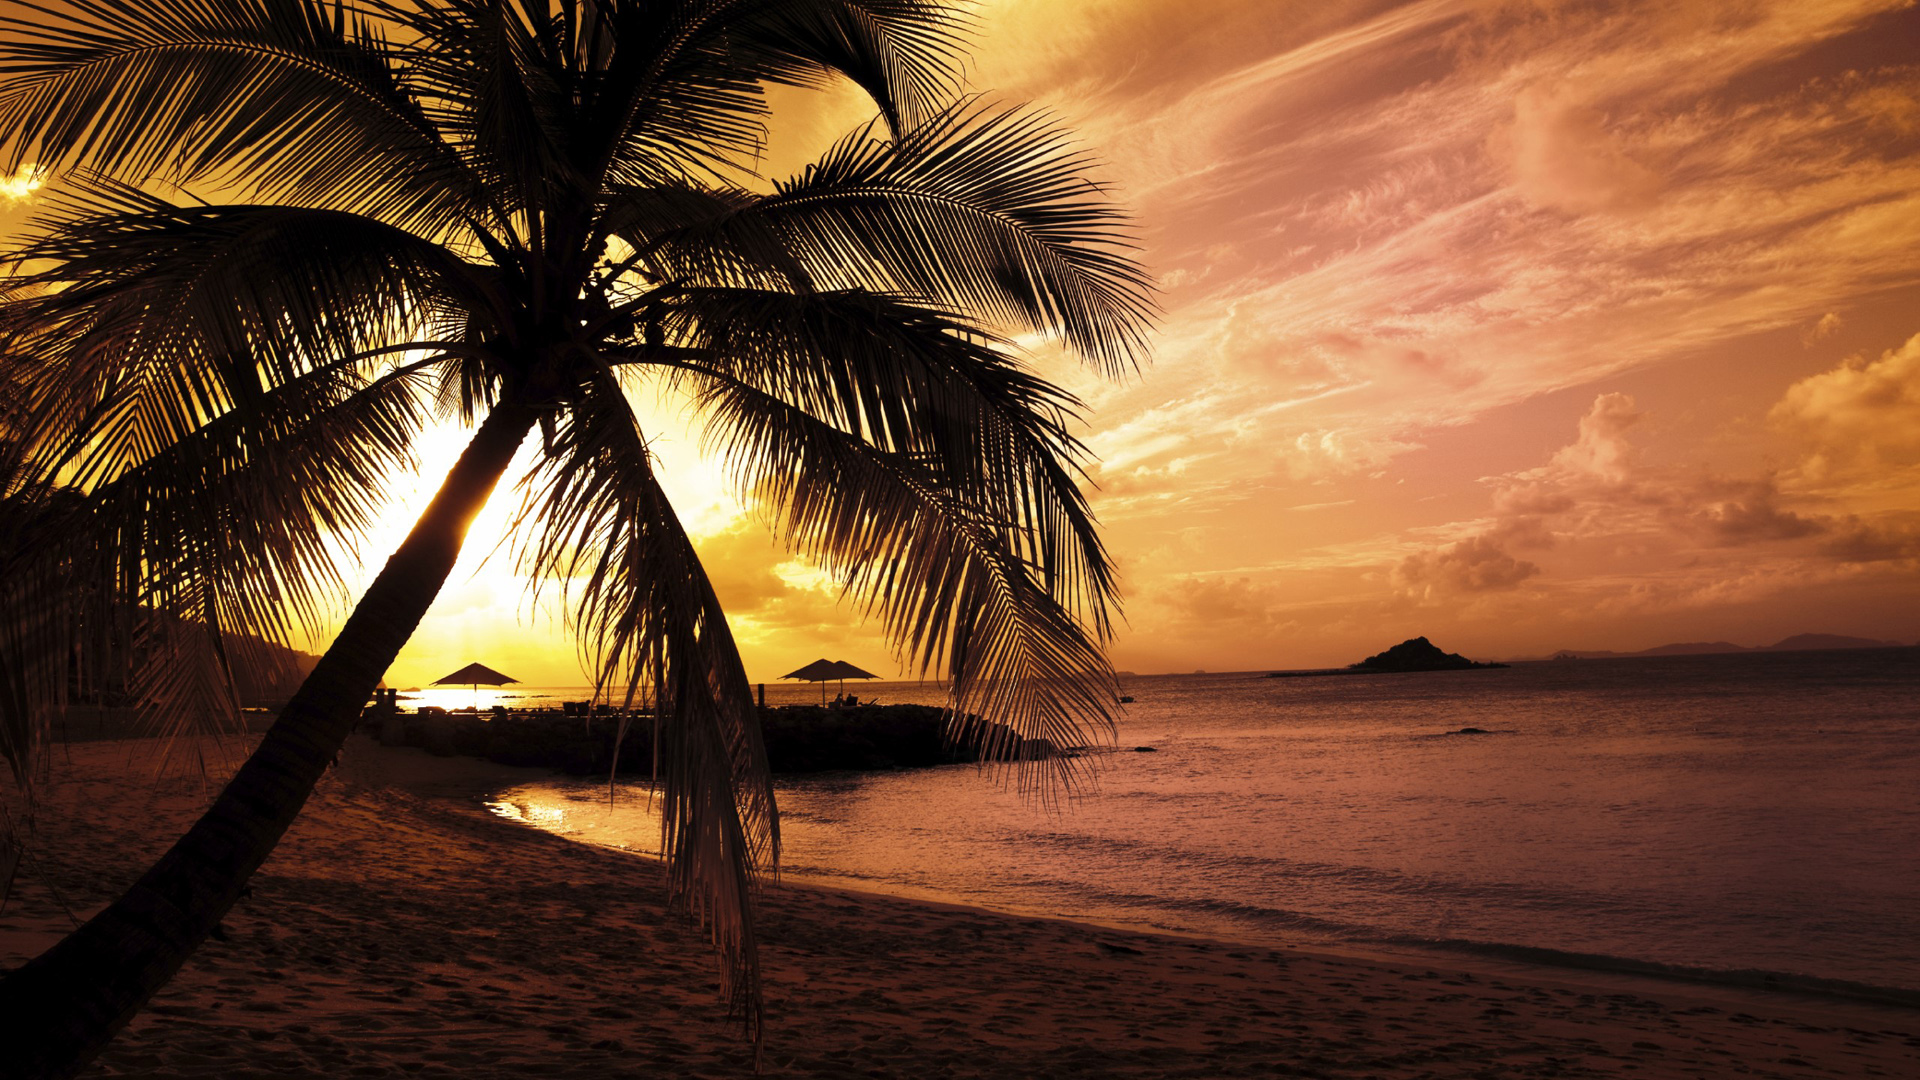 Beach Backgrounds IMAGESBEACH BACKGROUNDSBEACH PARADISE WALLPAPER 1920x1080